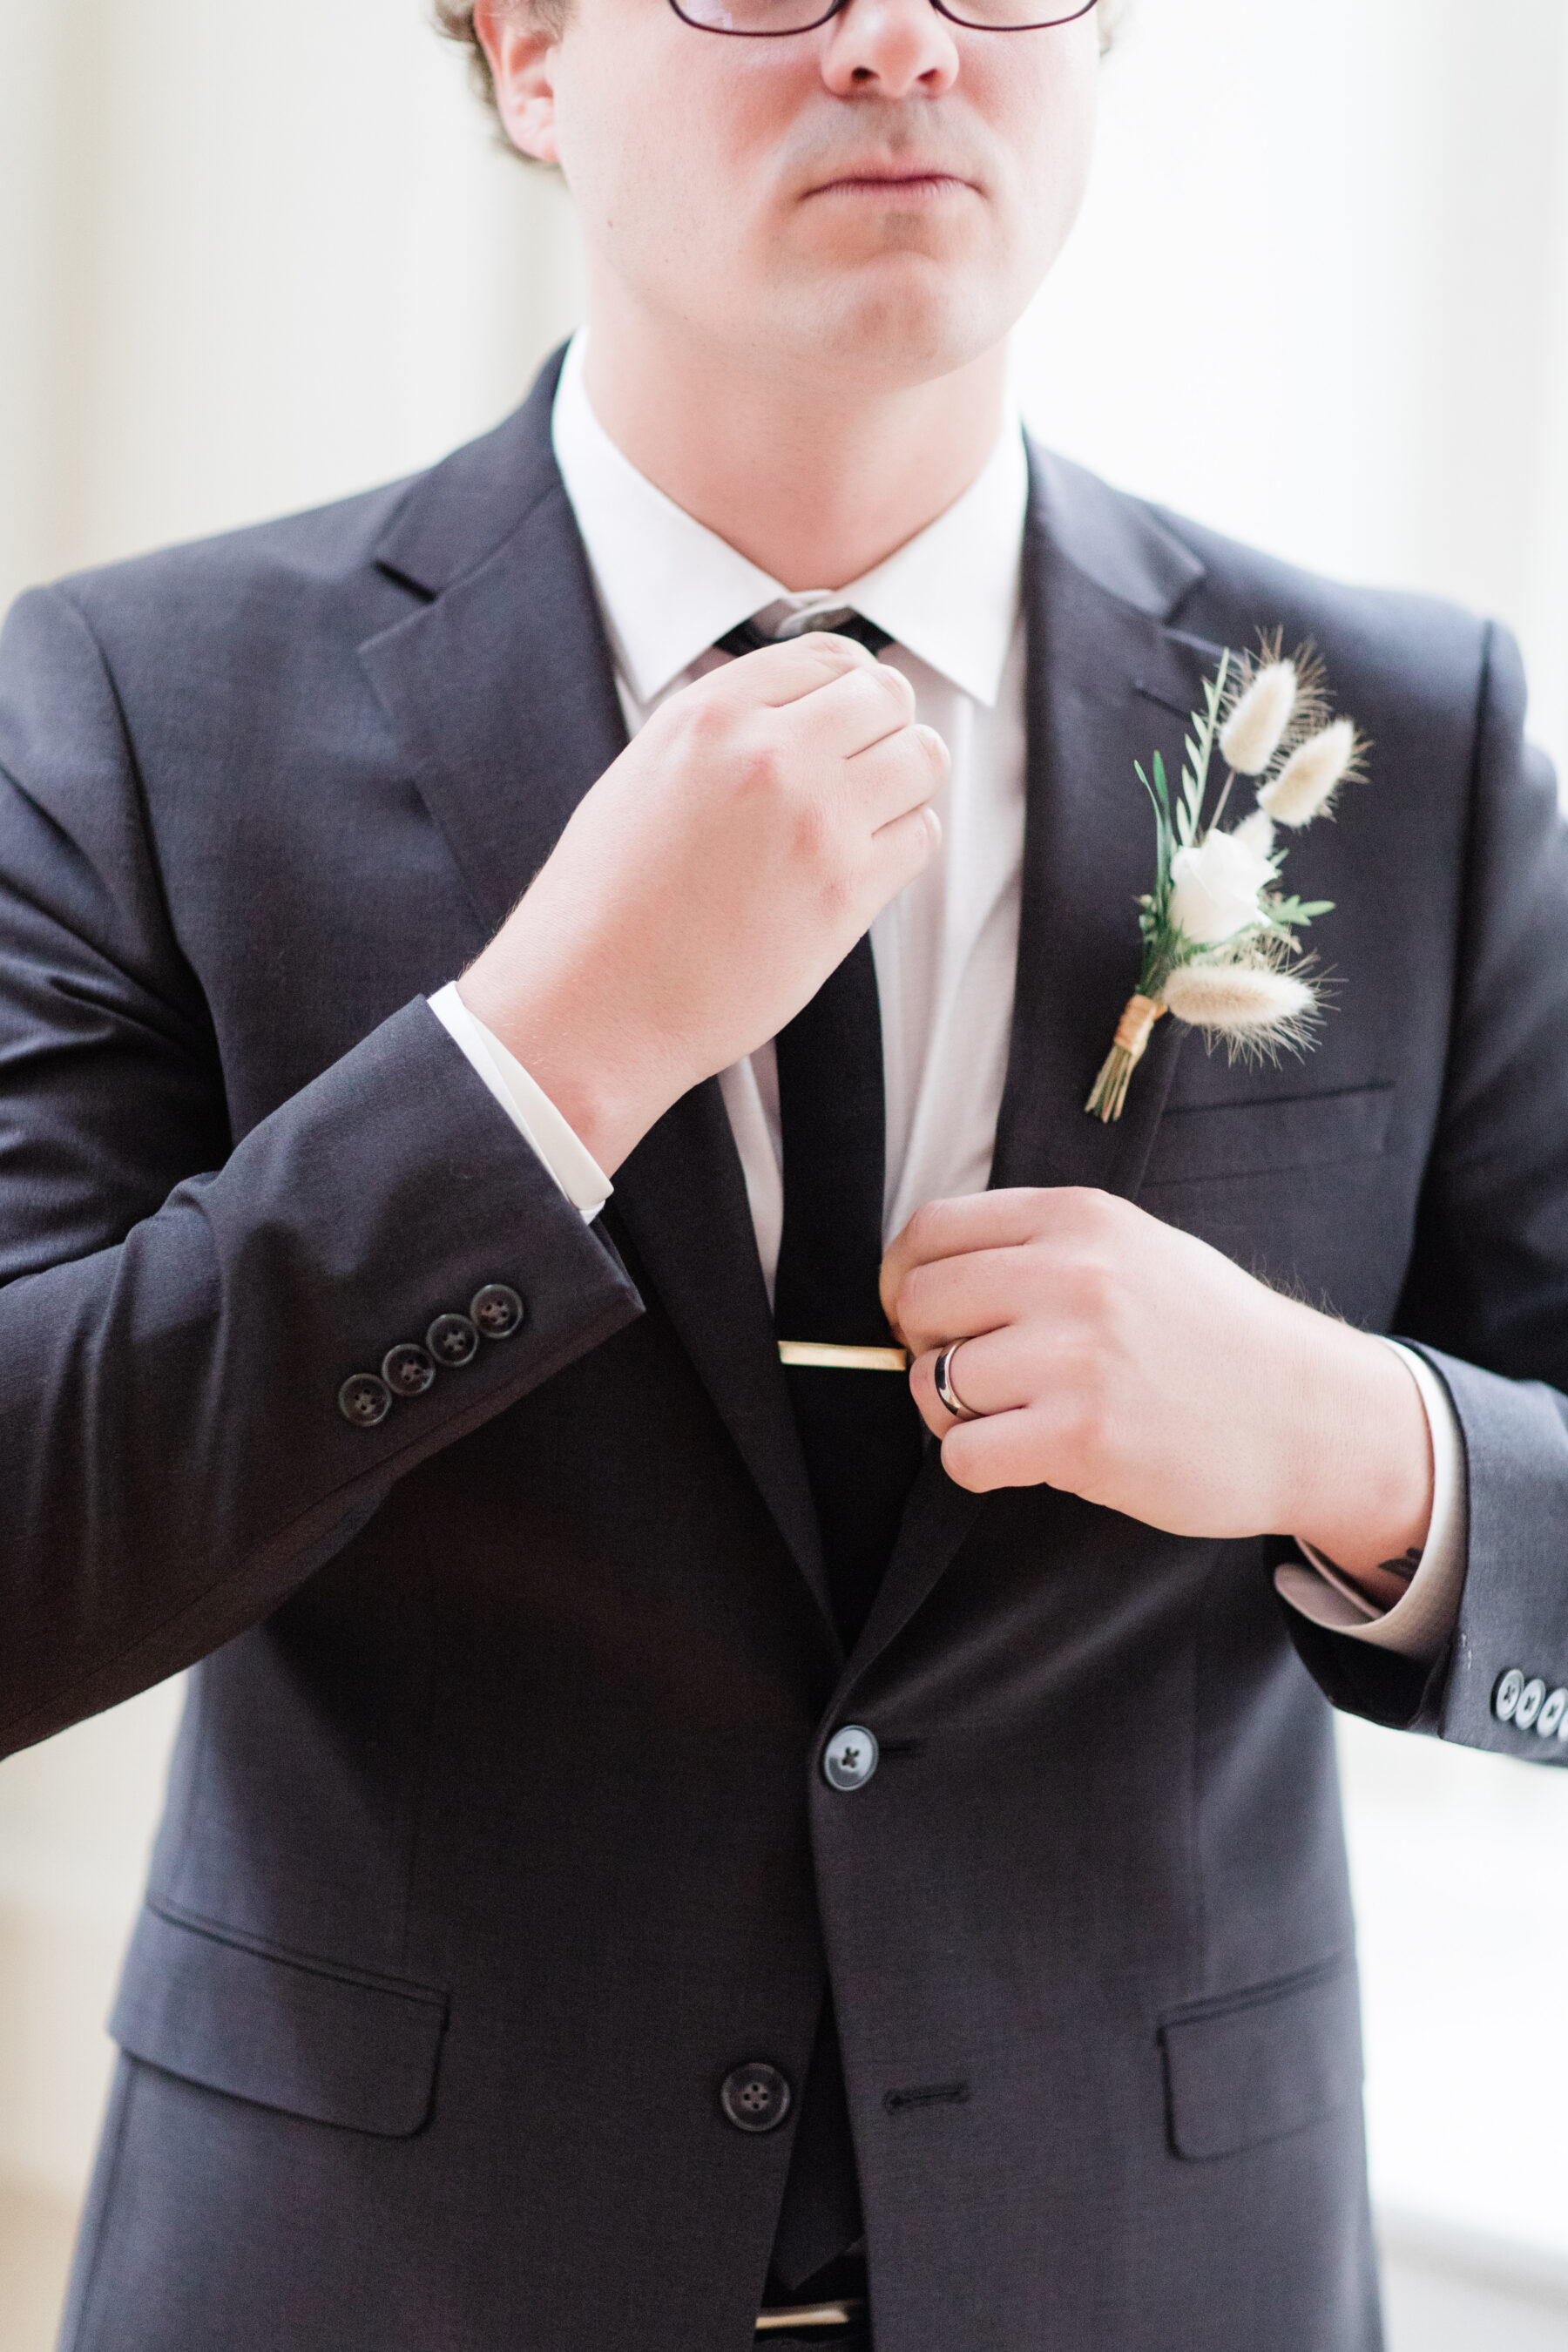 Wedding boutonniere: Classic, Yet Modern New Years Eve Wedding Inspiration featured on Nashville Bride Guide